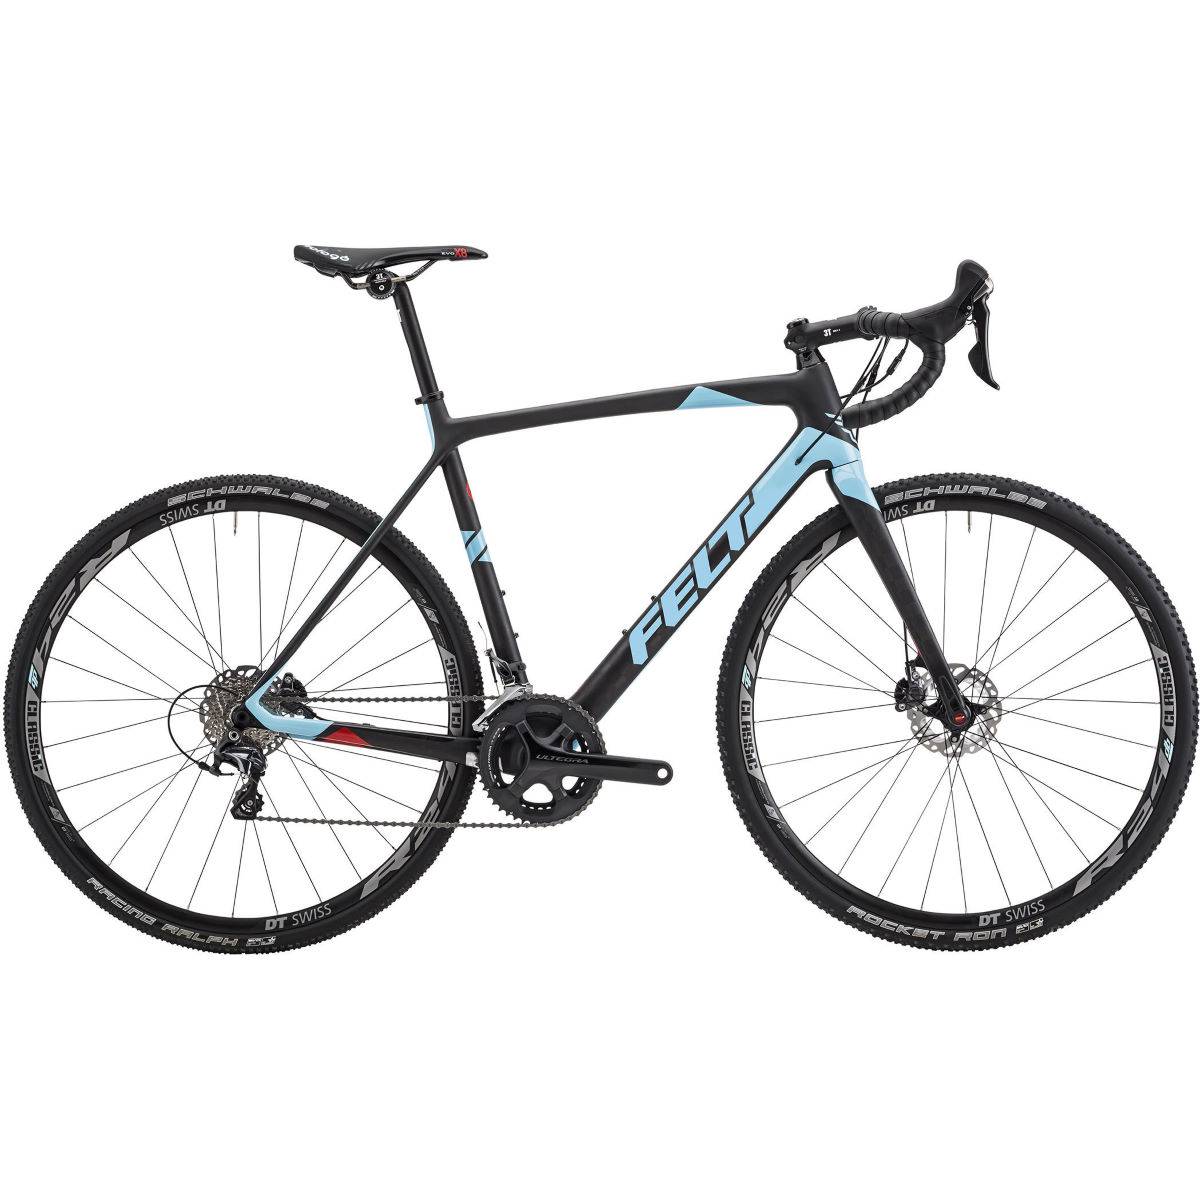 Vélo de cyclocross Felt F3x (Ultegra, 2017) - 53cm Stock Bike